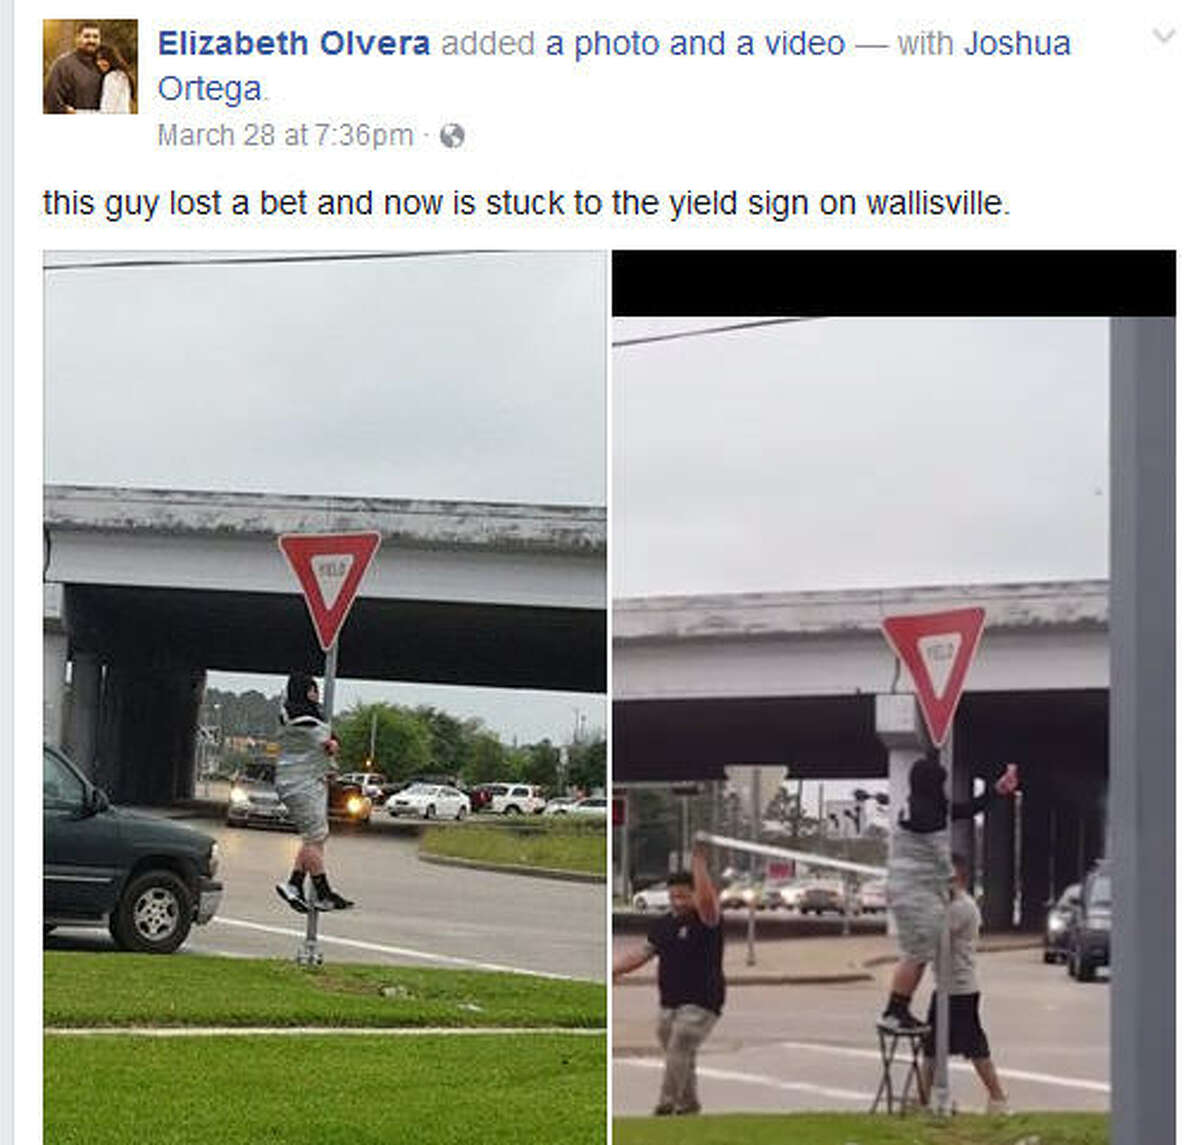 This man was left taped to a yield sign pole near in east Harris County after he lost a bet. Apparently, no one was hurt or arrested in the incident. (Facebook via Elizabeth Olvera)